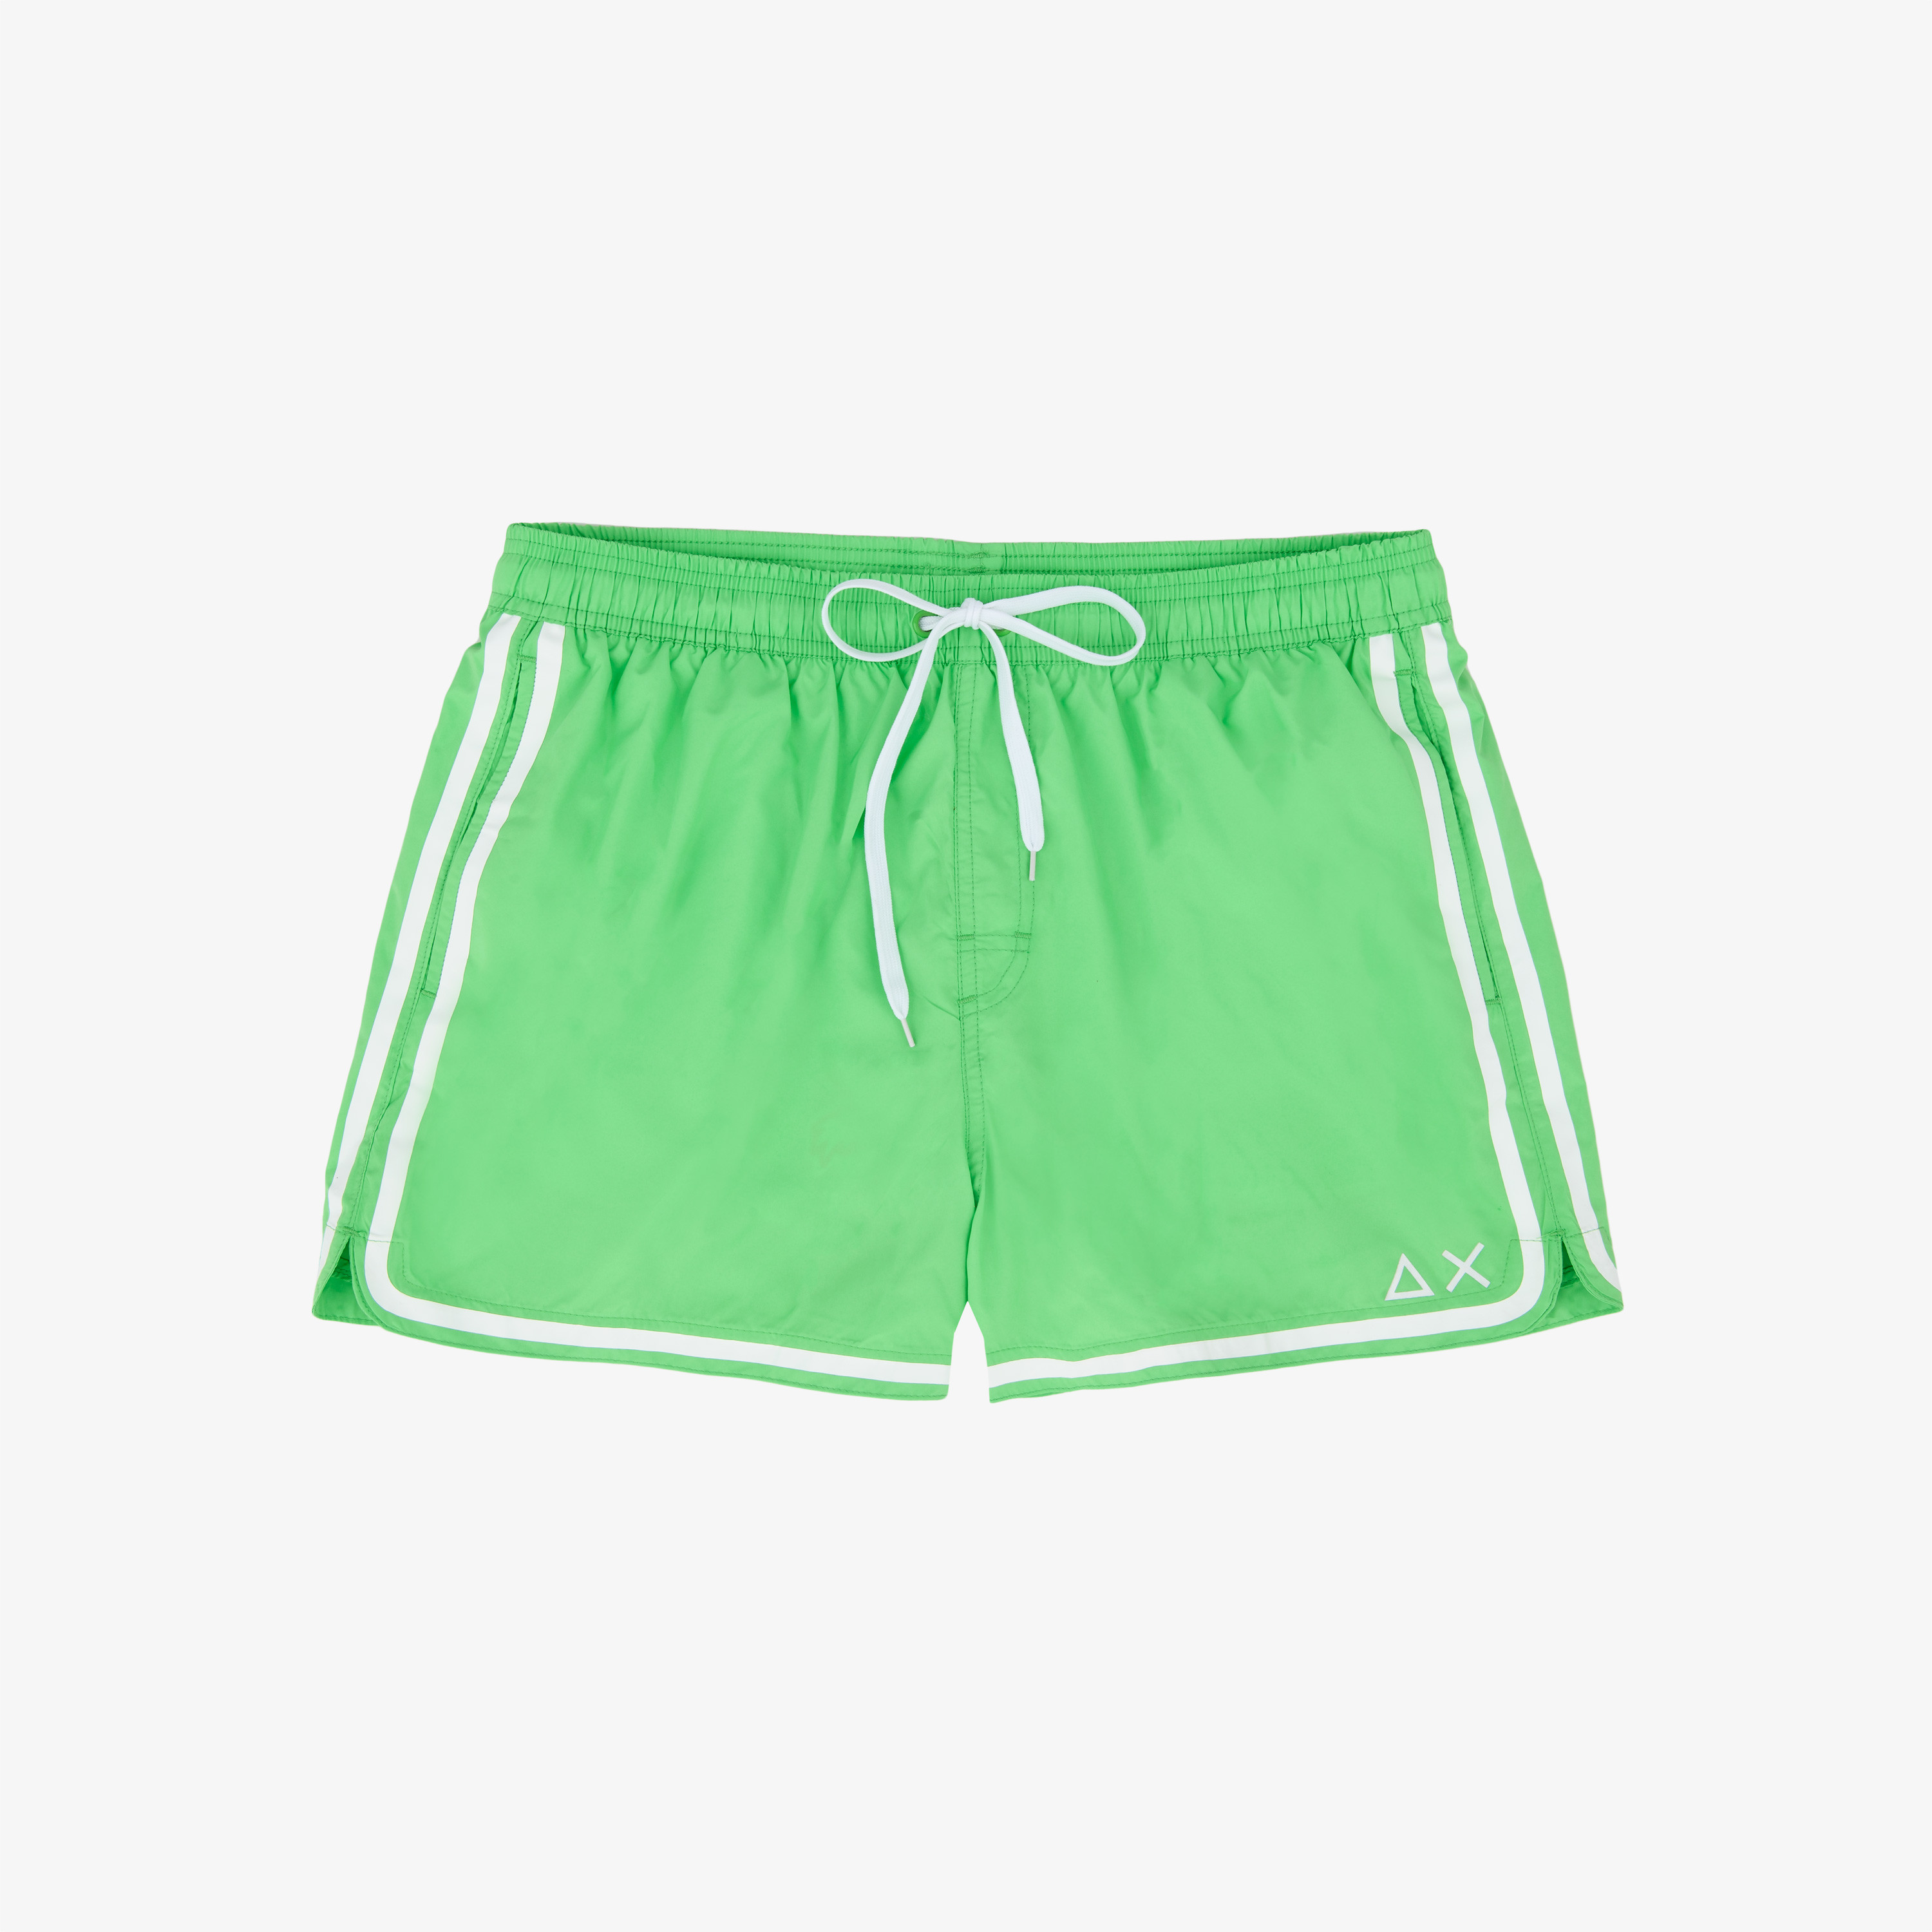 SWIM PANT SIDE BAND WHITE VERDE FLUO